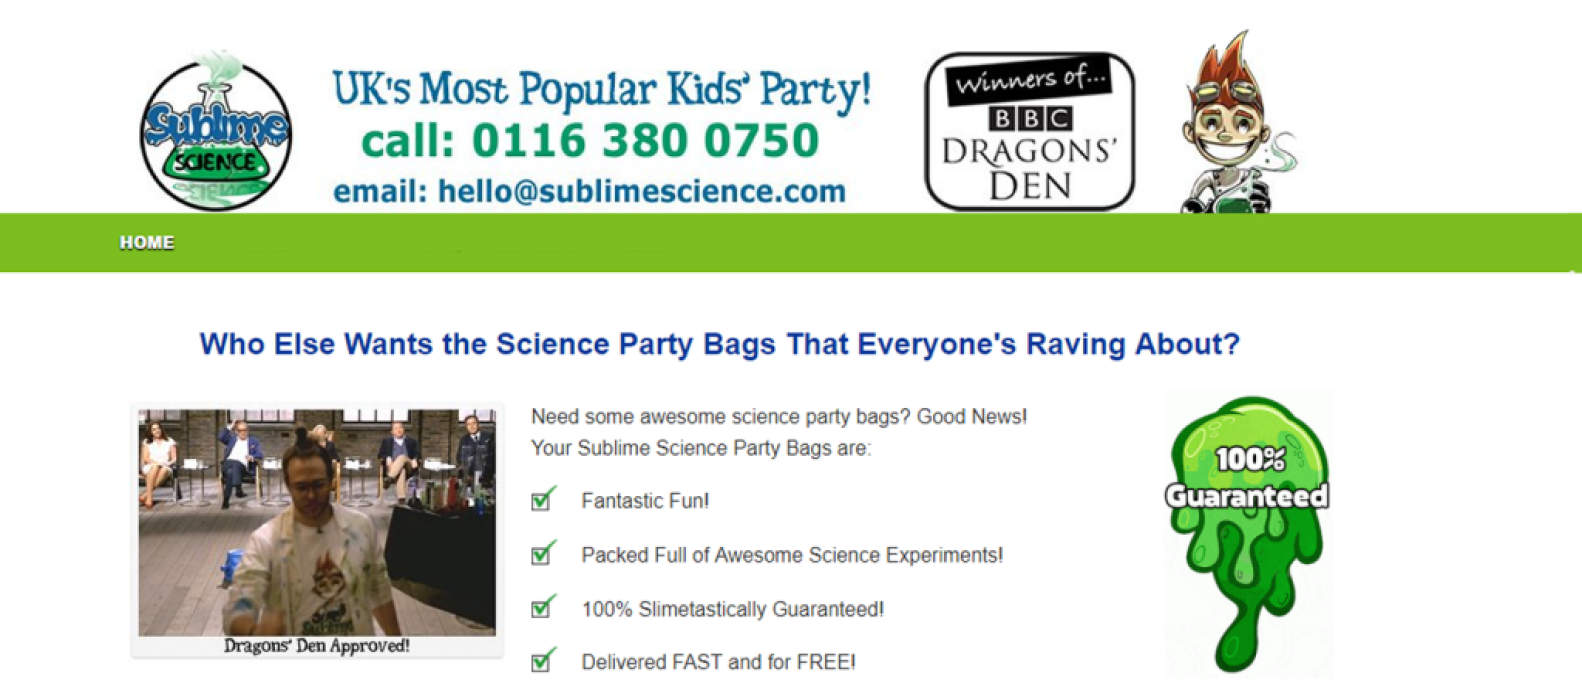 Sublime Science Party Bags